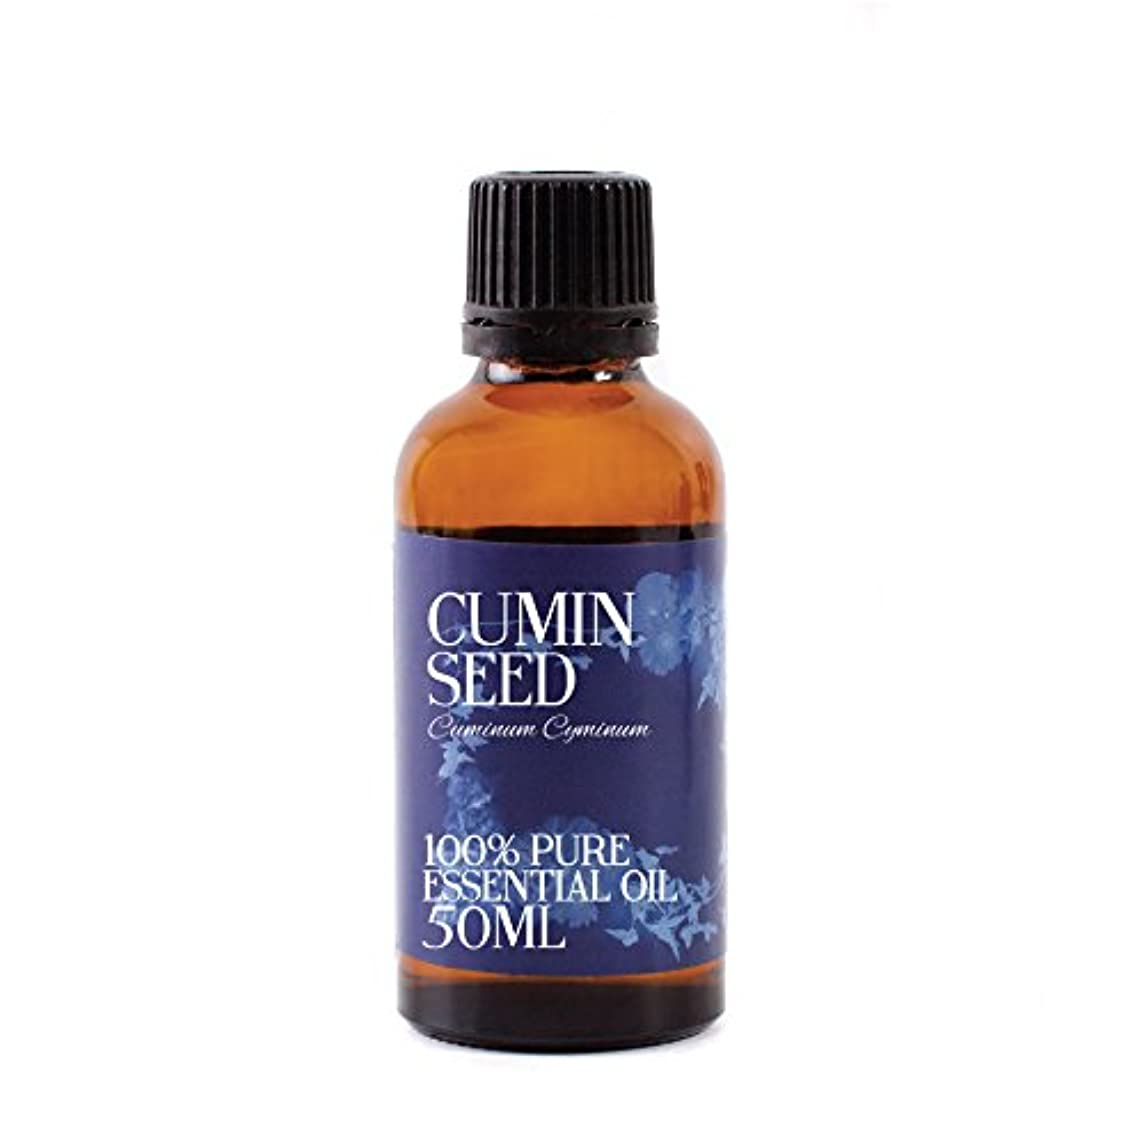 辞書大理石甘やかすMystic Moments | Cumin Seed Essential Oil - 50ml - 100% Pure